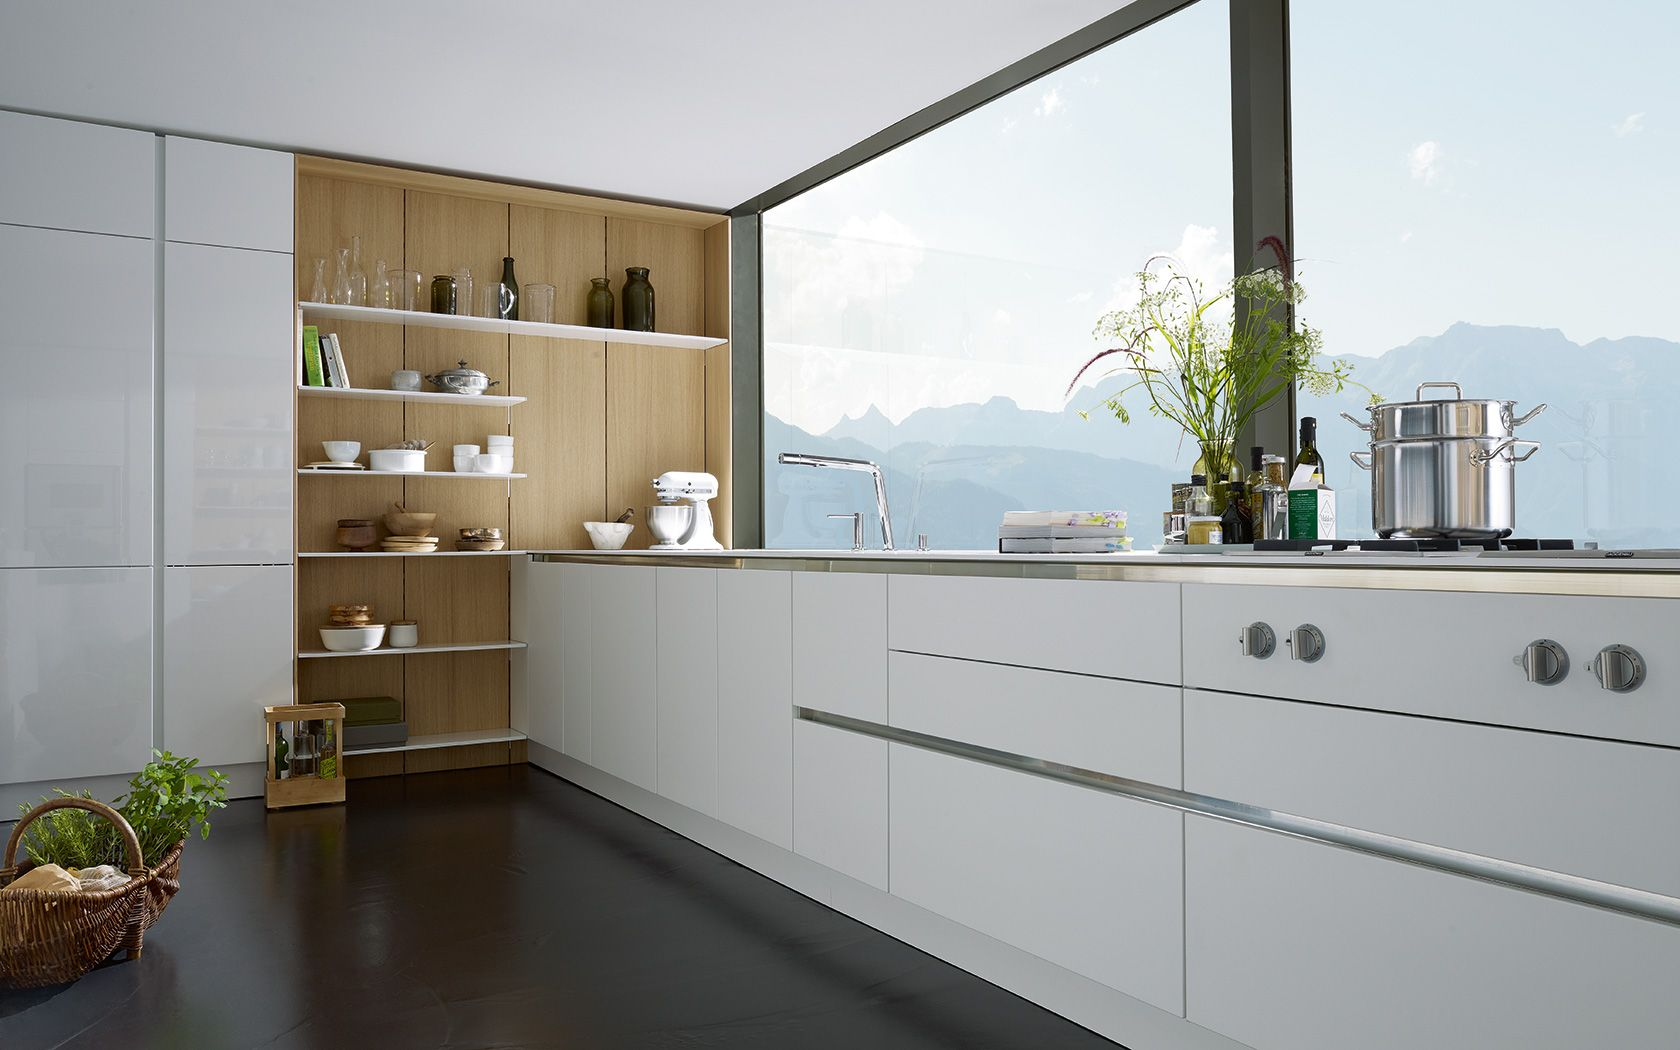 Modern Kitchen Without Handles S2 Siematic Com Kitchen Cabinets Without Handles Kitchen Without Handles Modern Kitchen Open